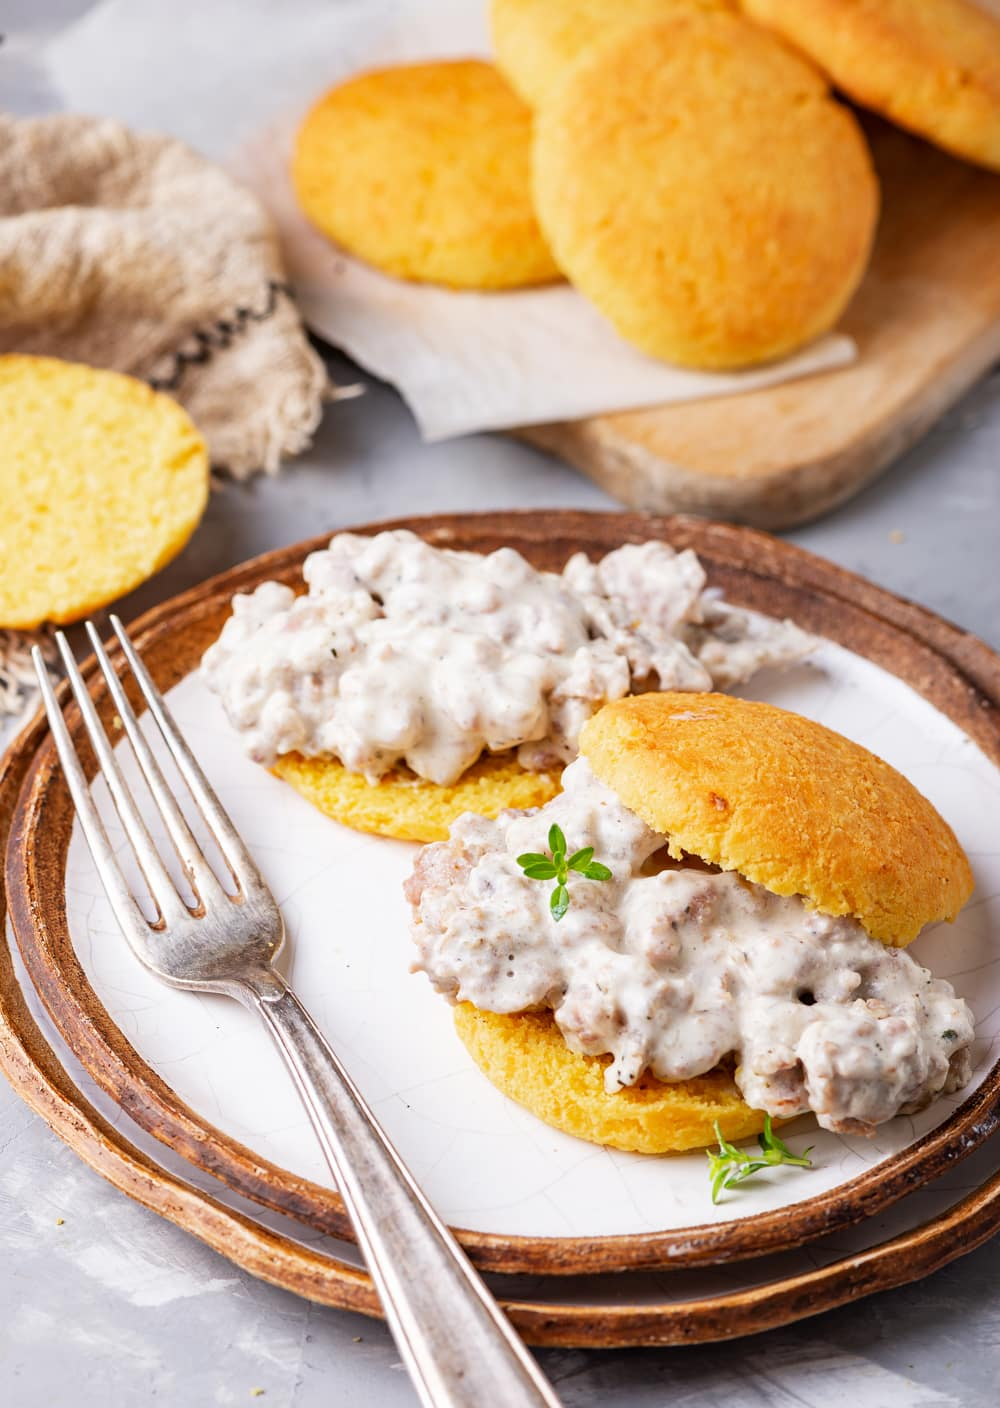 A biscuit filled with gravy and another biscuit behind it that's been topped with gravy. The biscuits are set on 2 plates that have been stacked on top of one another, and there are more biscuits on a cutting board behind the plate.